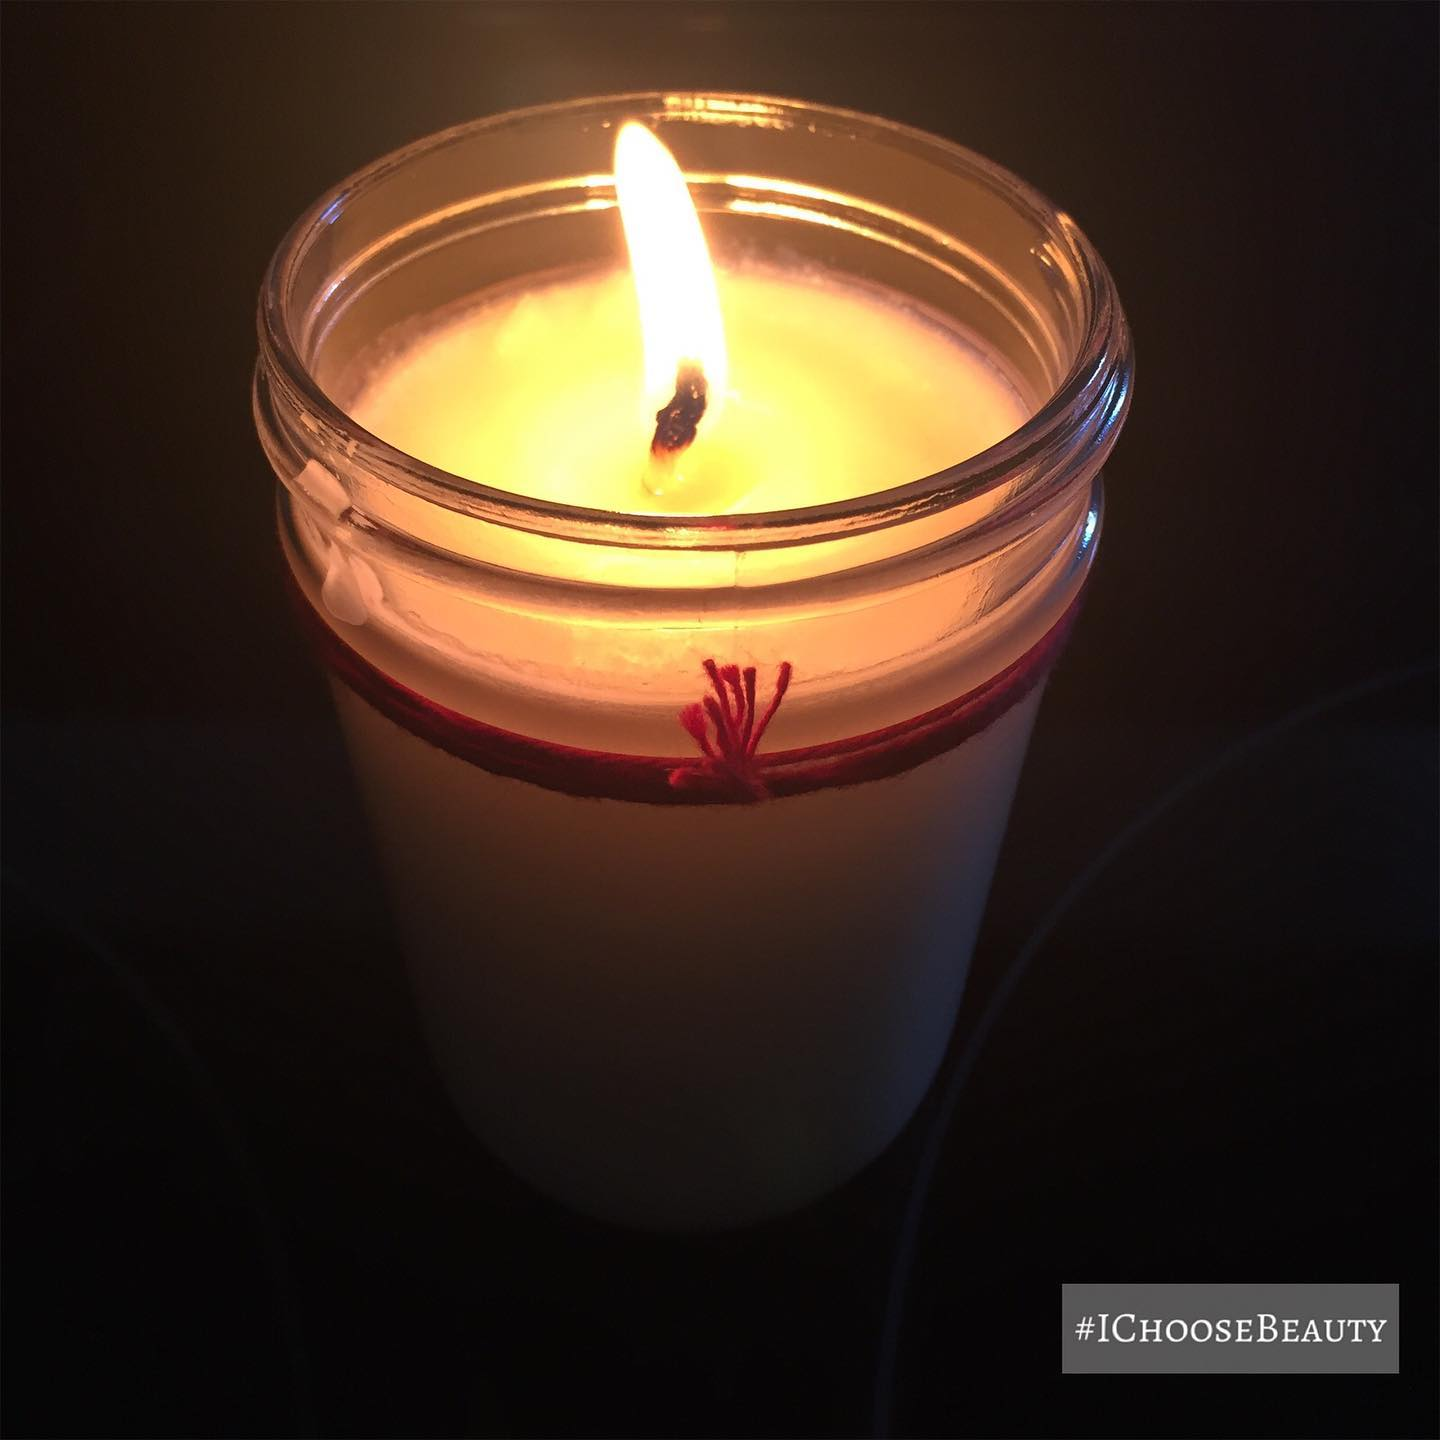 What a dark day for our country. I lit this candle for a little bit of comfort and light for us all. 🏽 #ichoosebeauty Day 2604